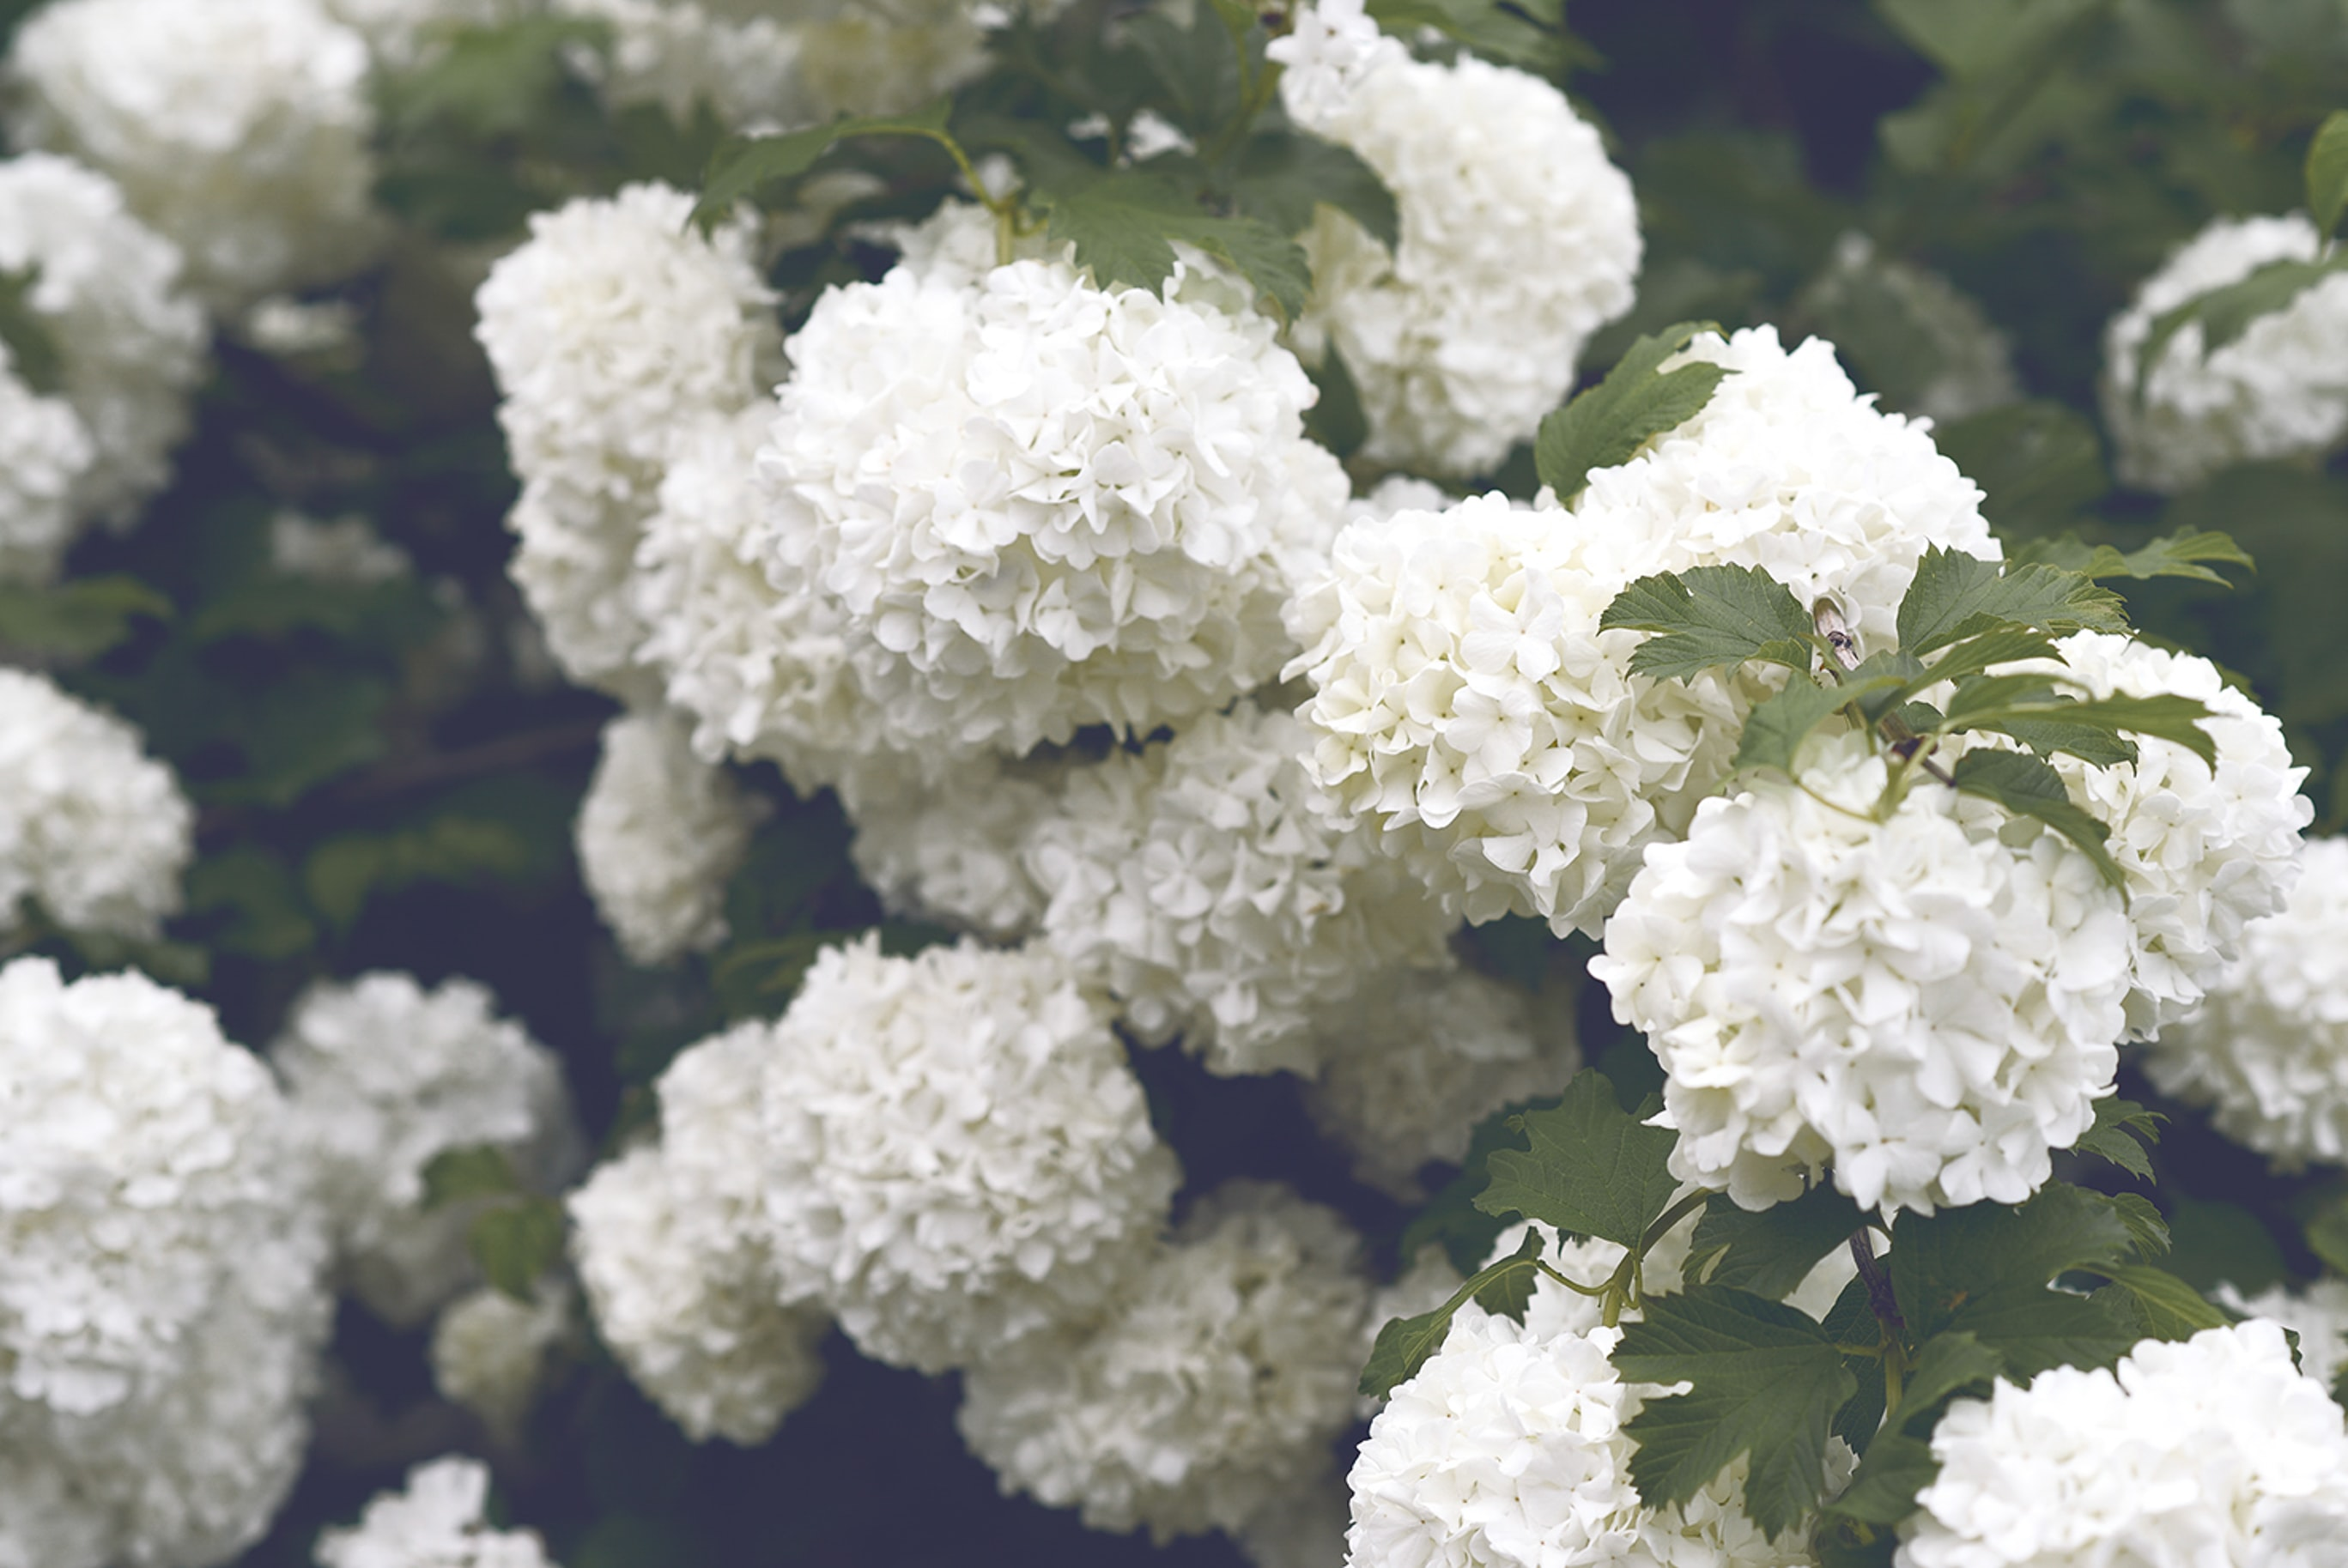 White hydrangea flowers in large clusters